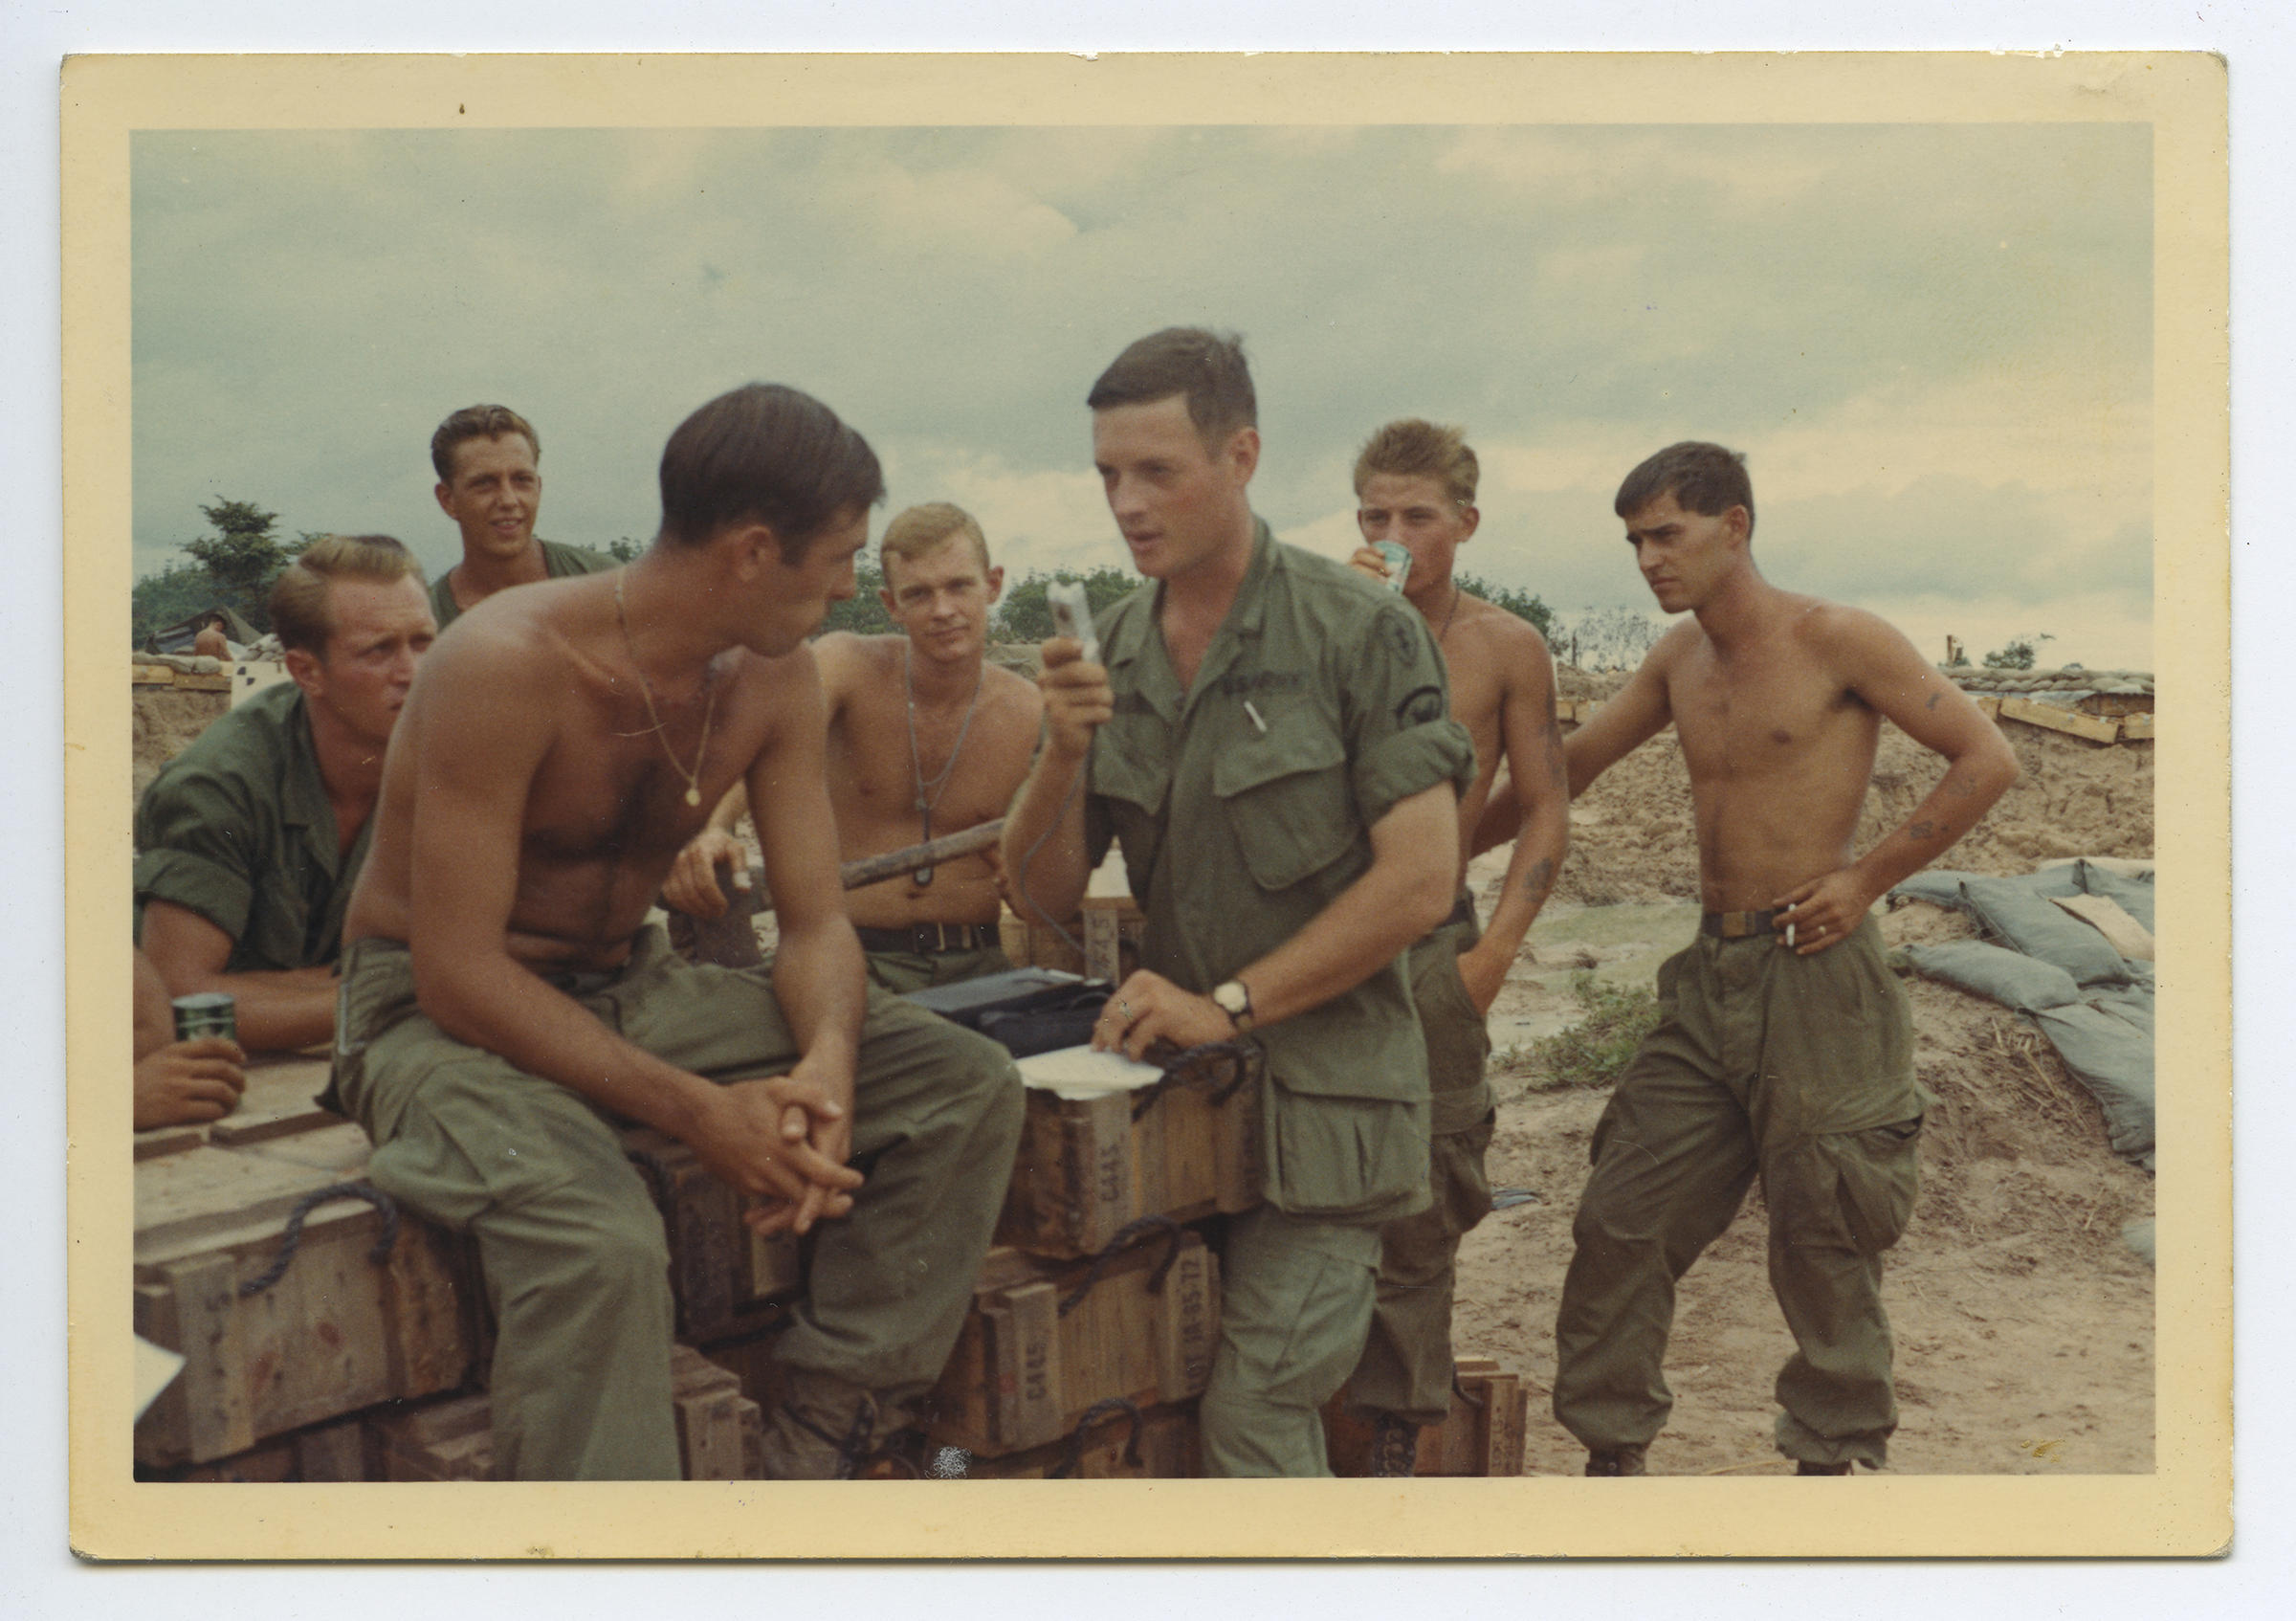 Exhibit Explores The Causes, And The Toll, Of The Vietnam